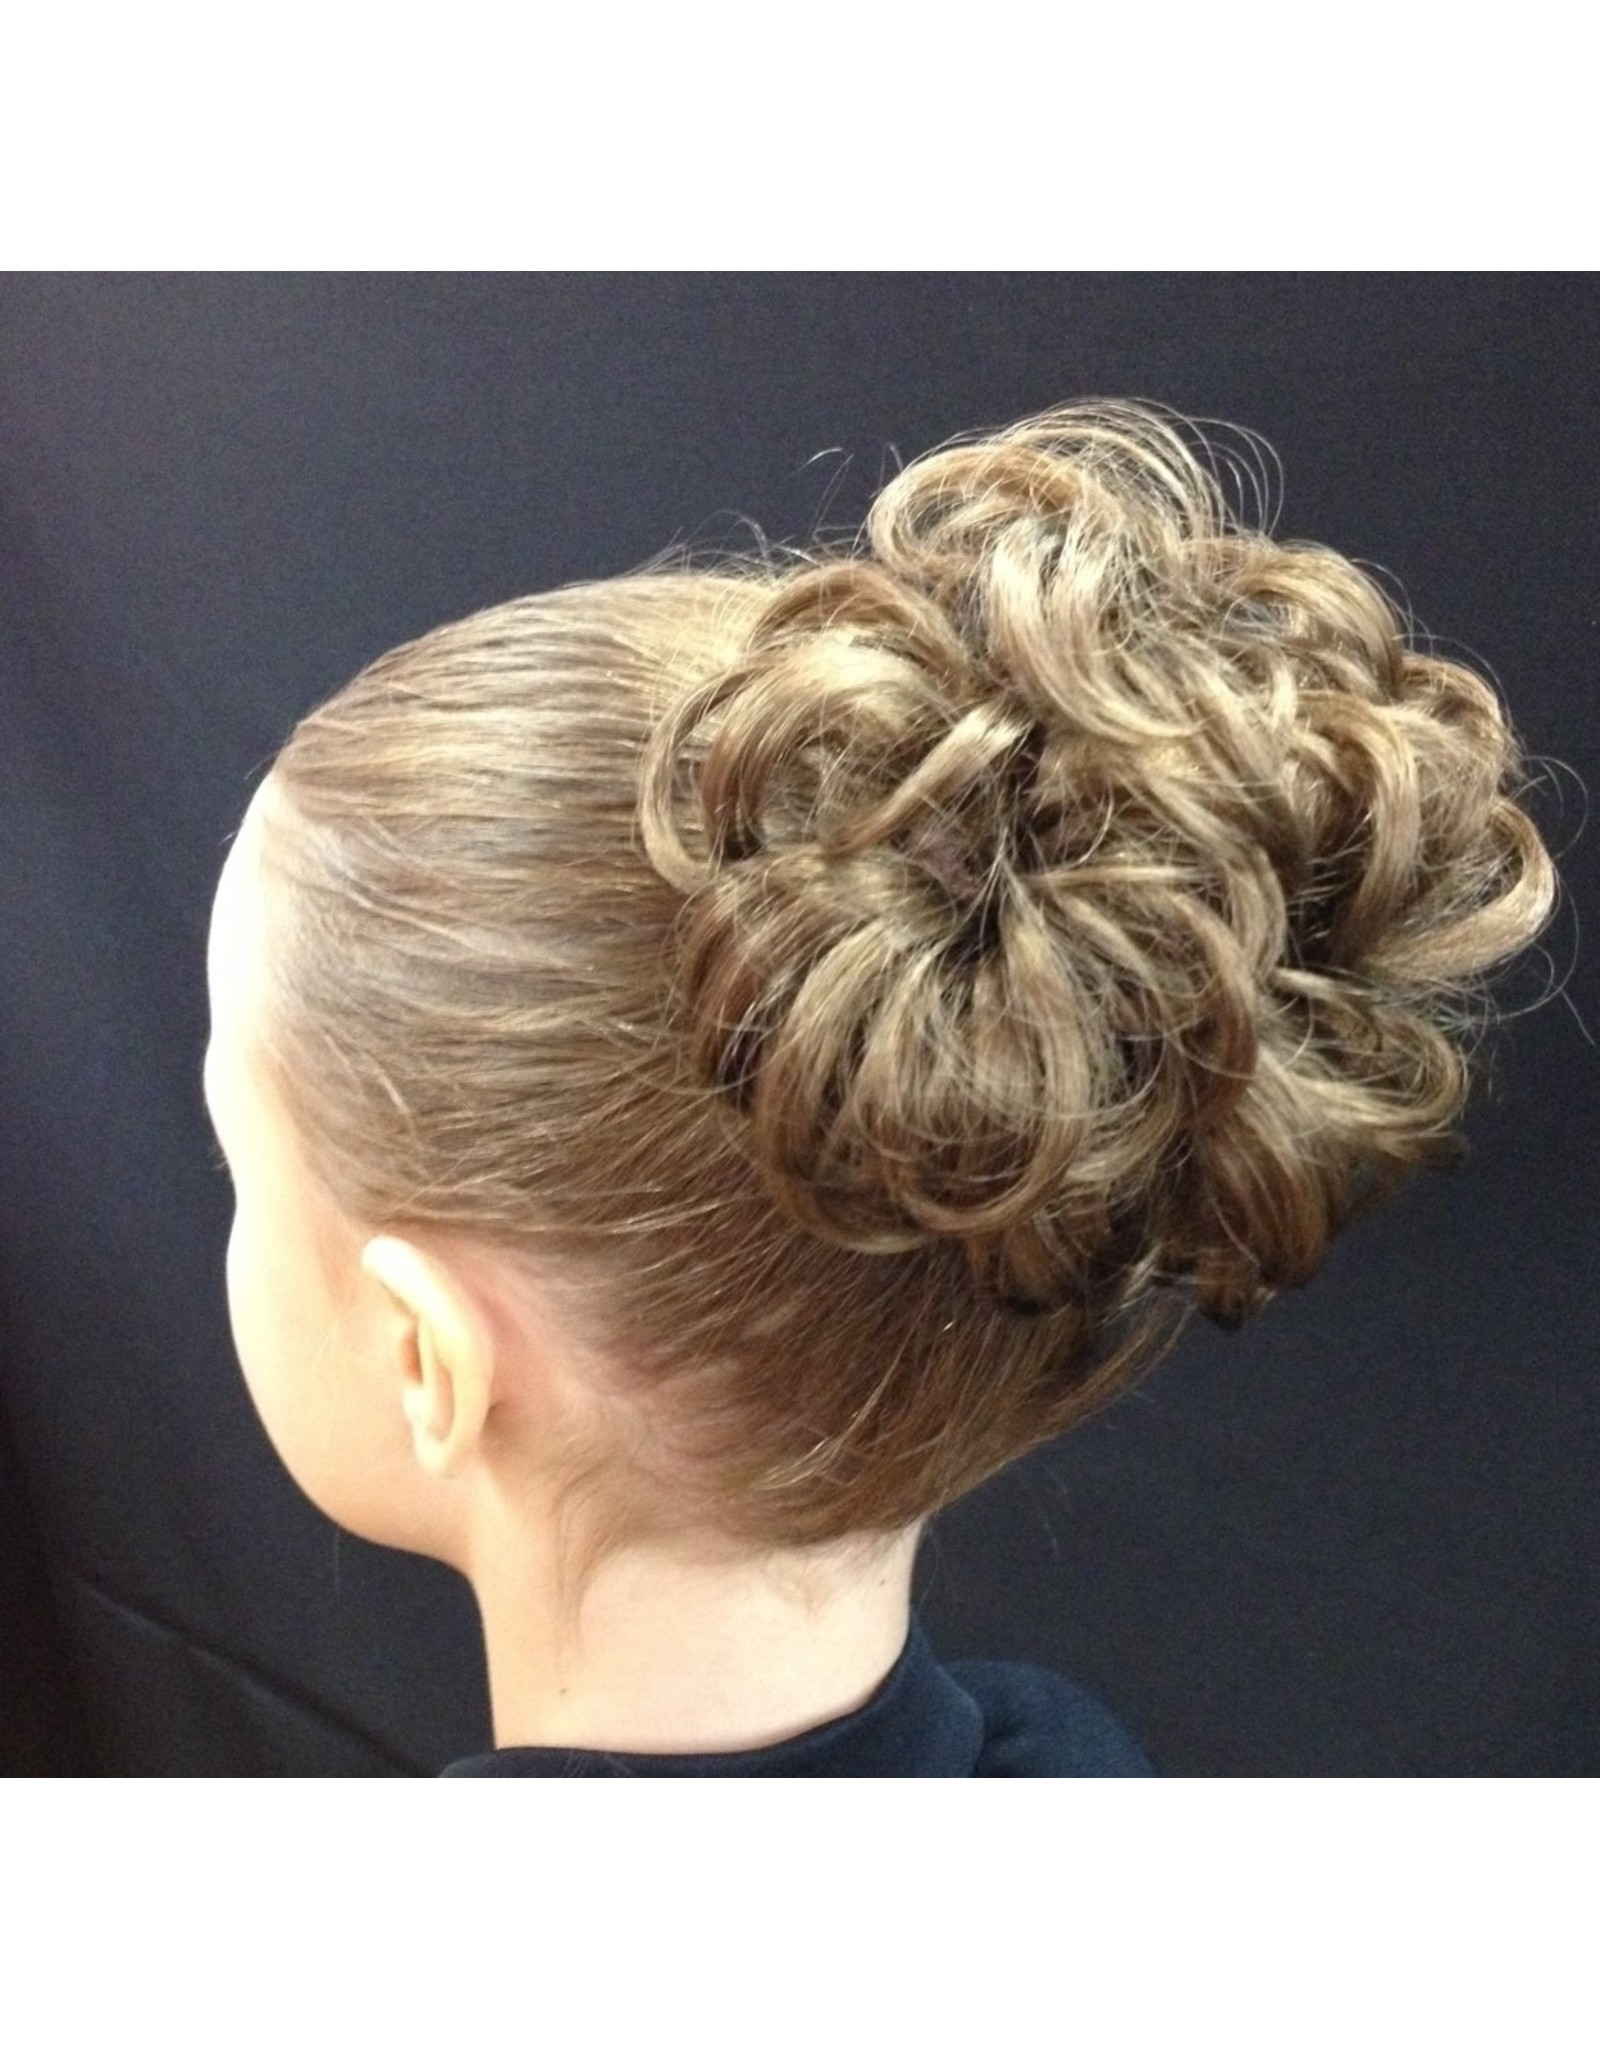 Dancer Hair Do's #83: Bun of Curls Hairpiece